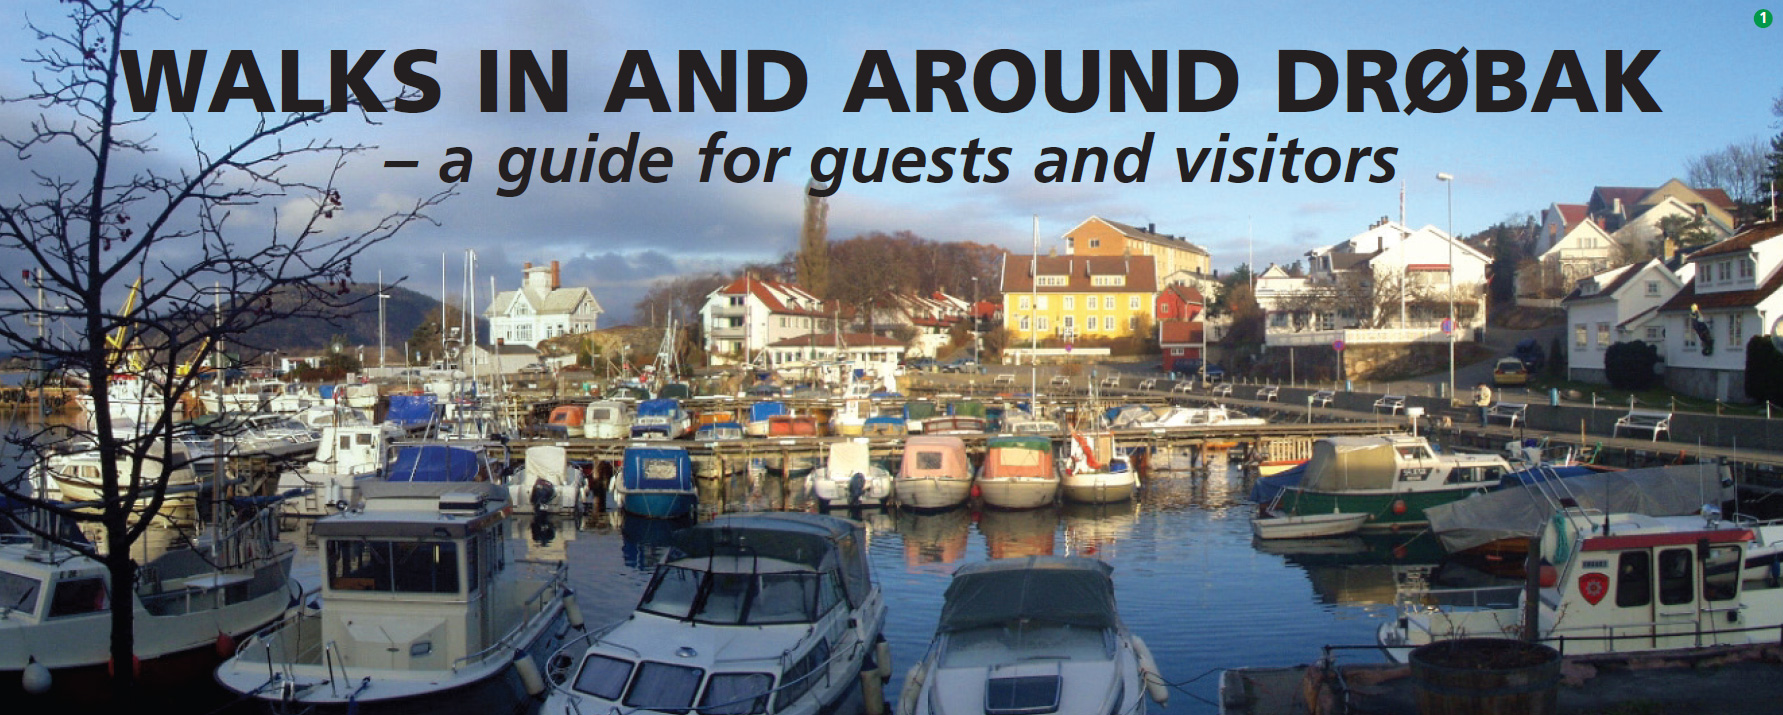 Walks in and around Drøbak - a guide for guests and visitors